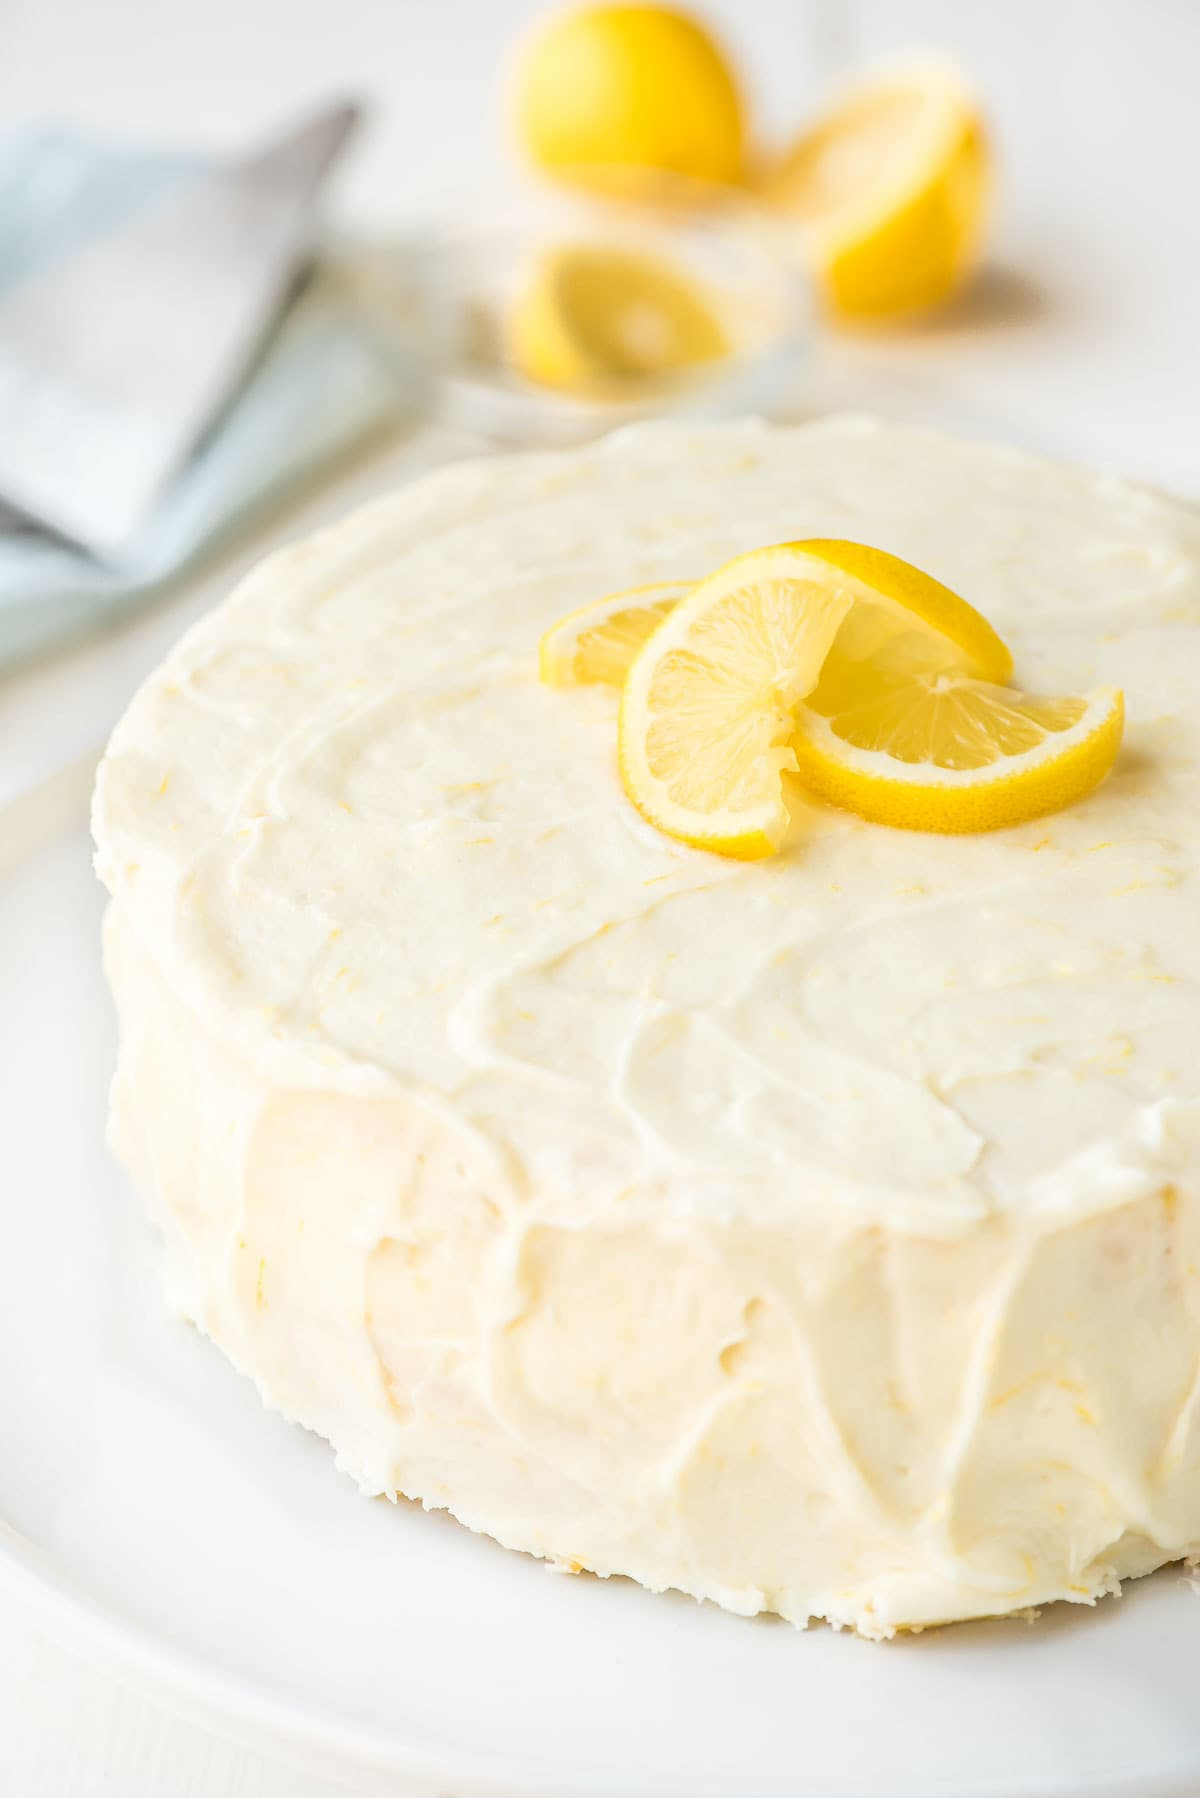 Lemon Cake Mix With Lemon Pie Filling